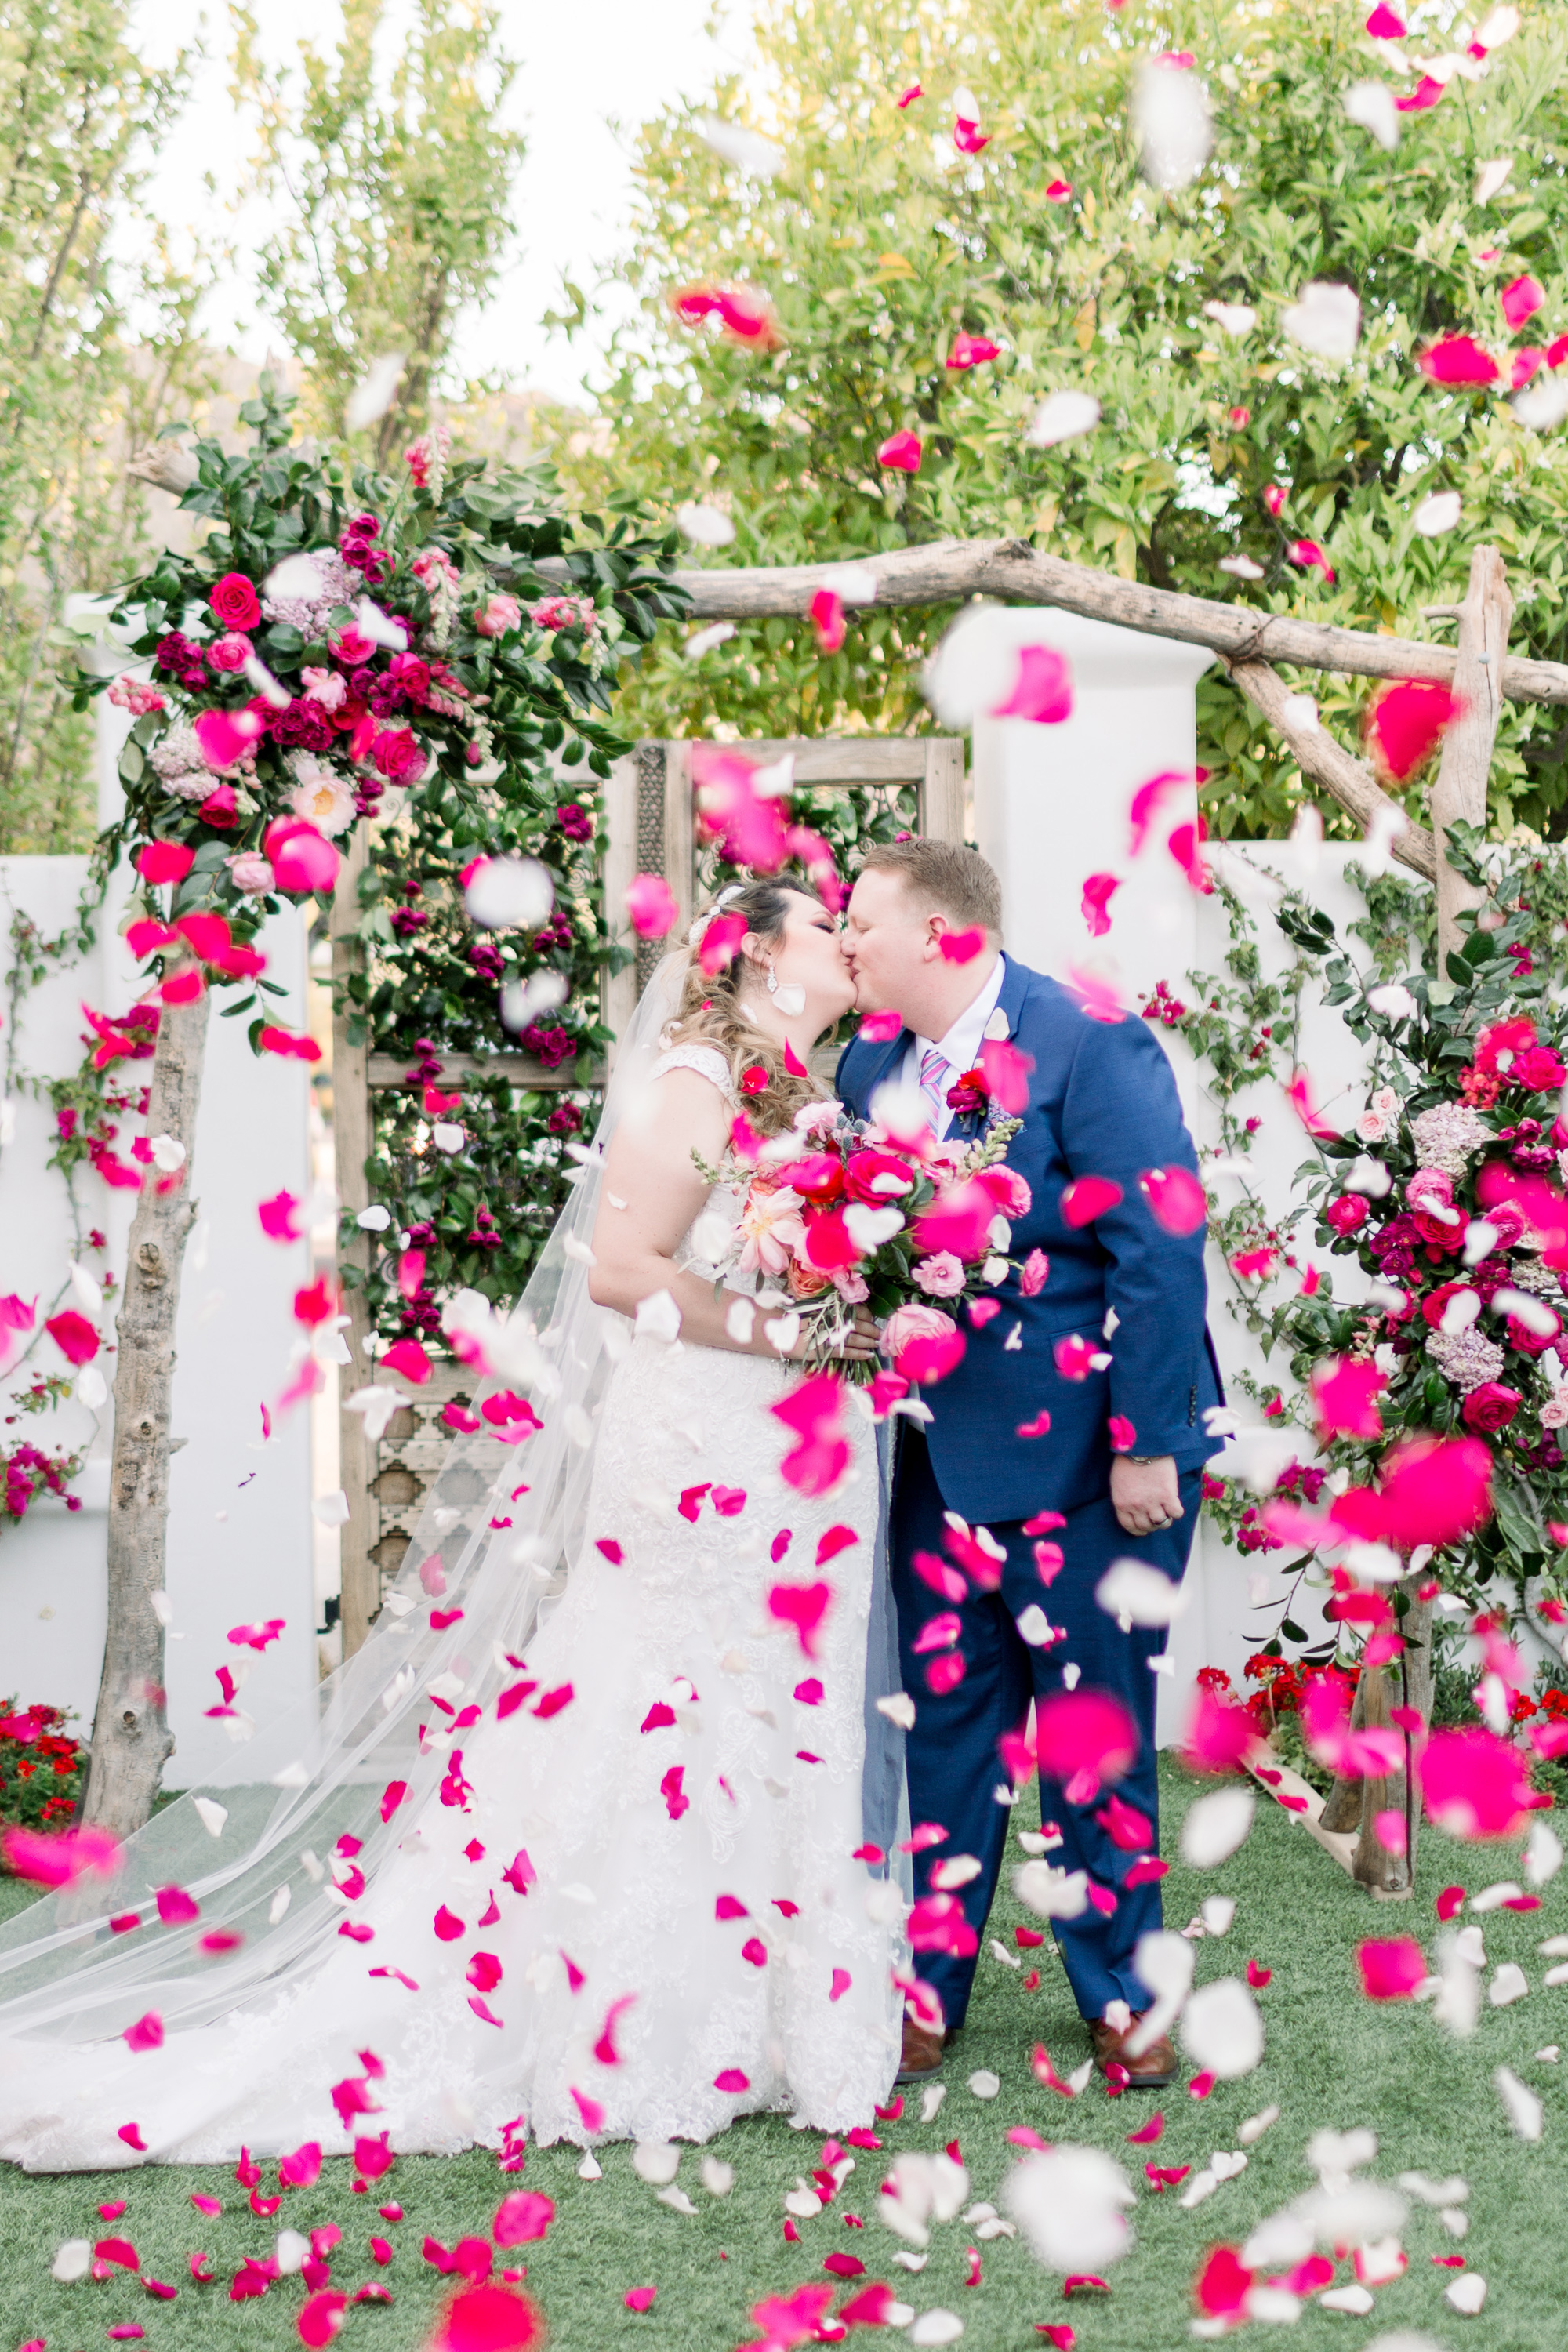 Roxanne and Brandon's El Chorro Wedding - Arizona florist Phoenix scottsdale Mesa chandler Sedona Prescott - Bride and Groom with Confetti Rose Petals